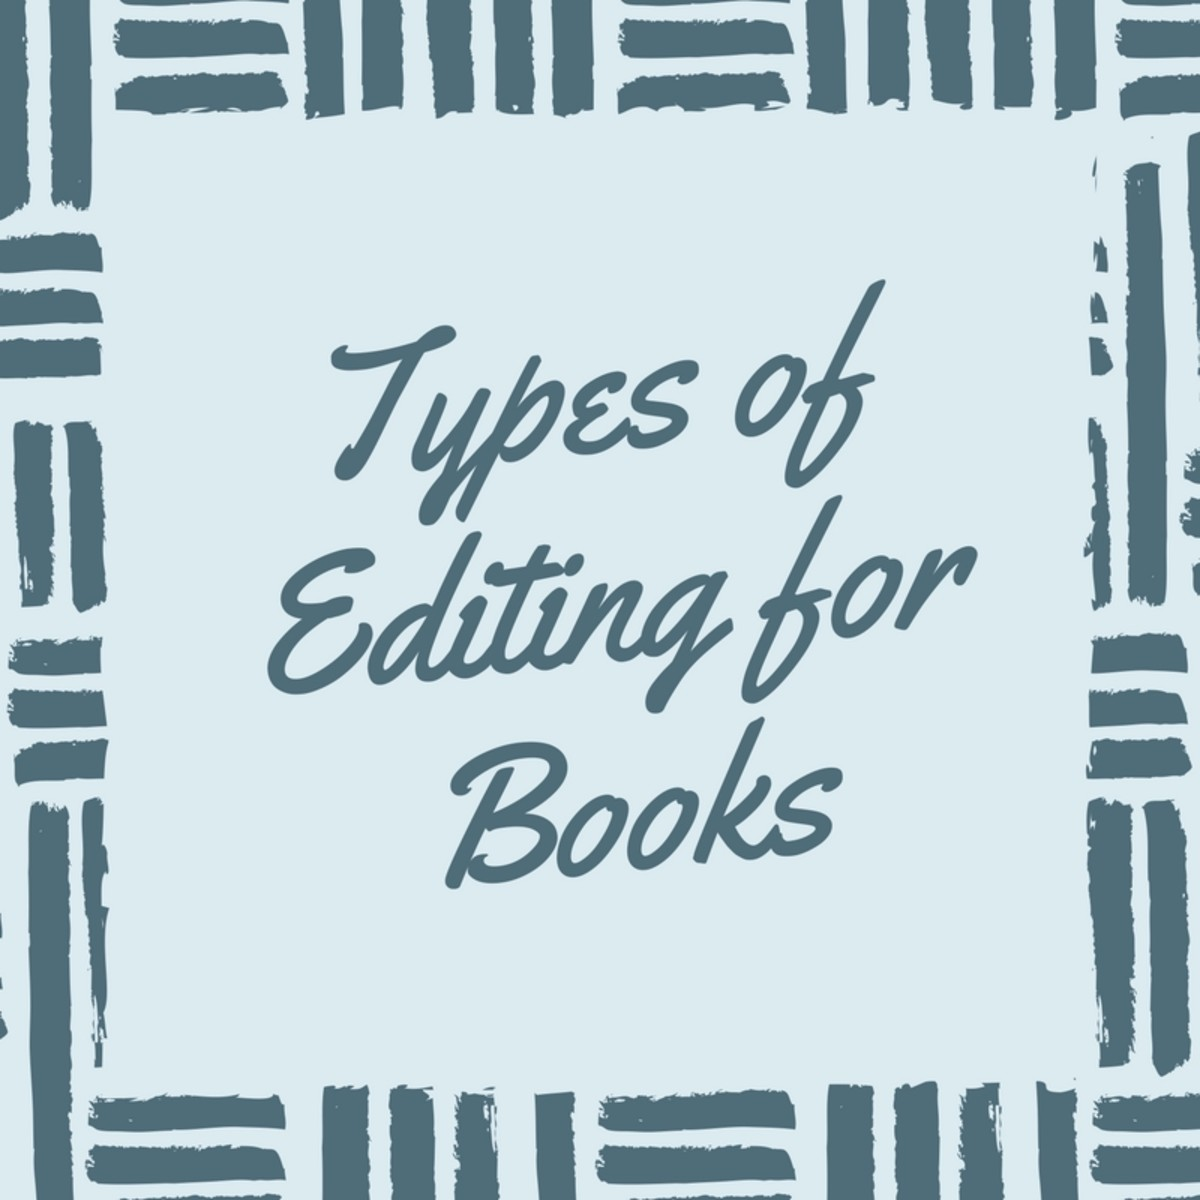 Types of Editing for Books